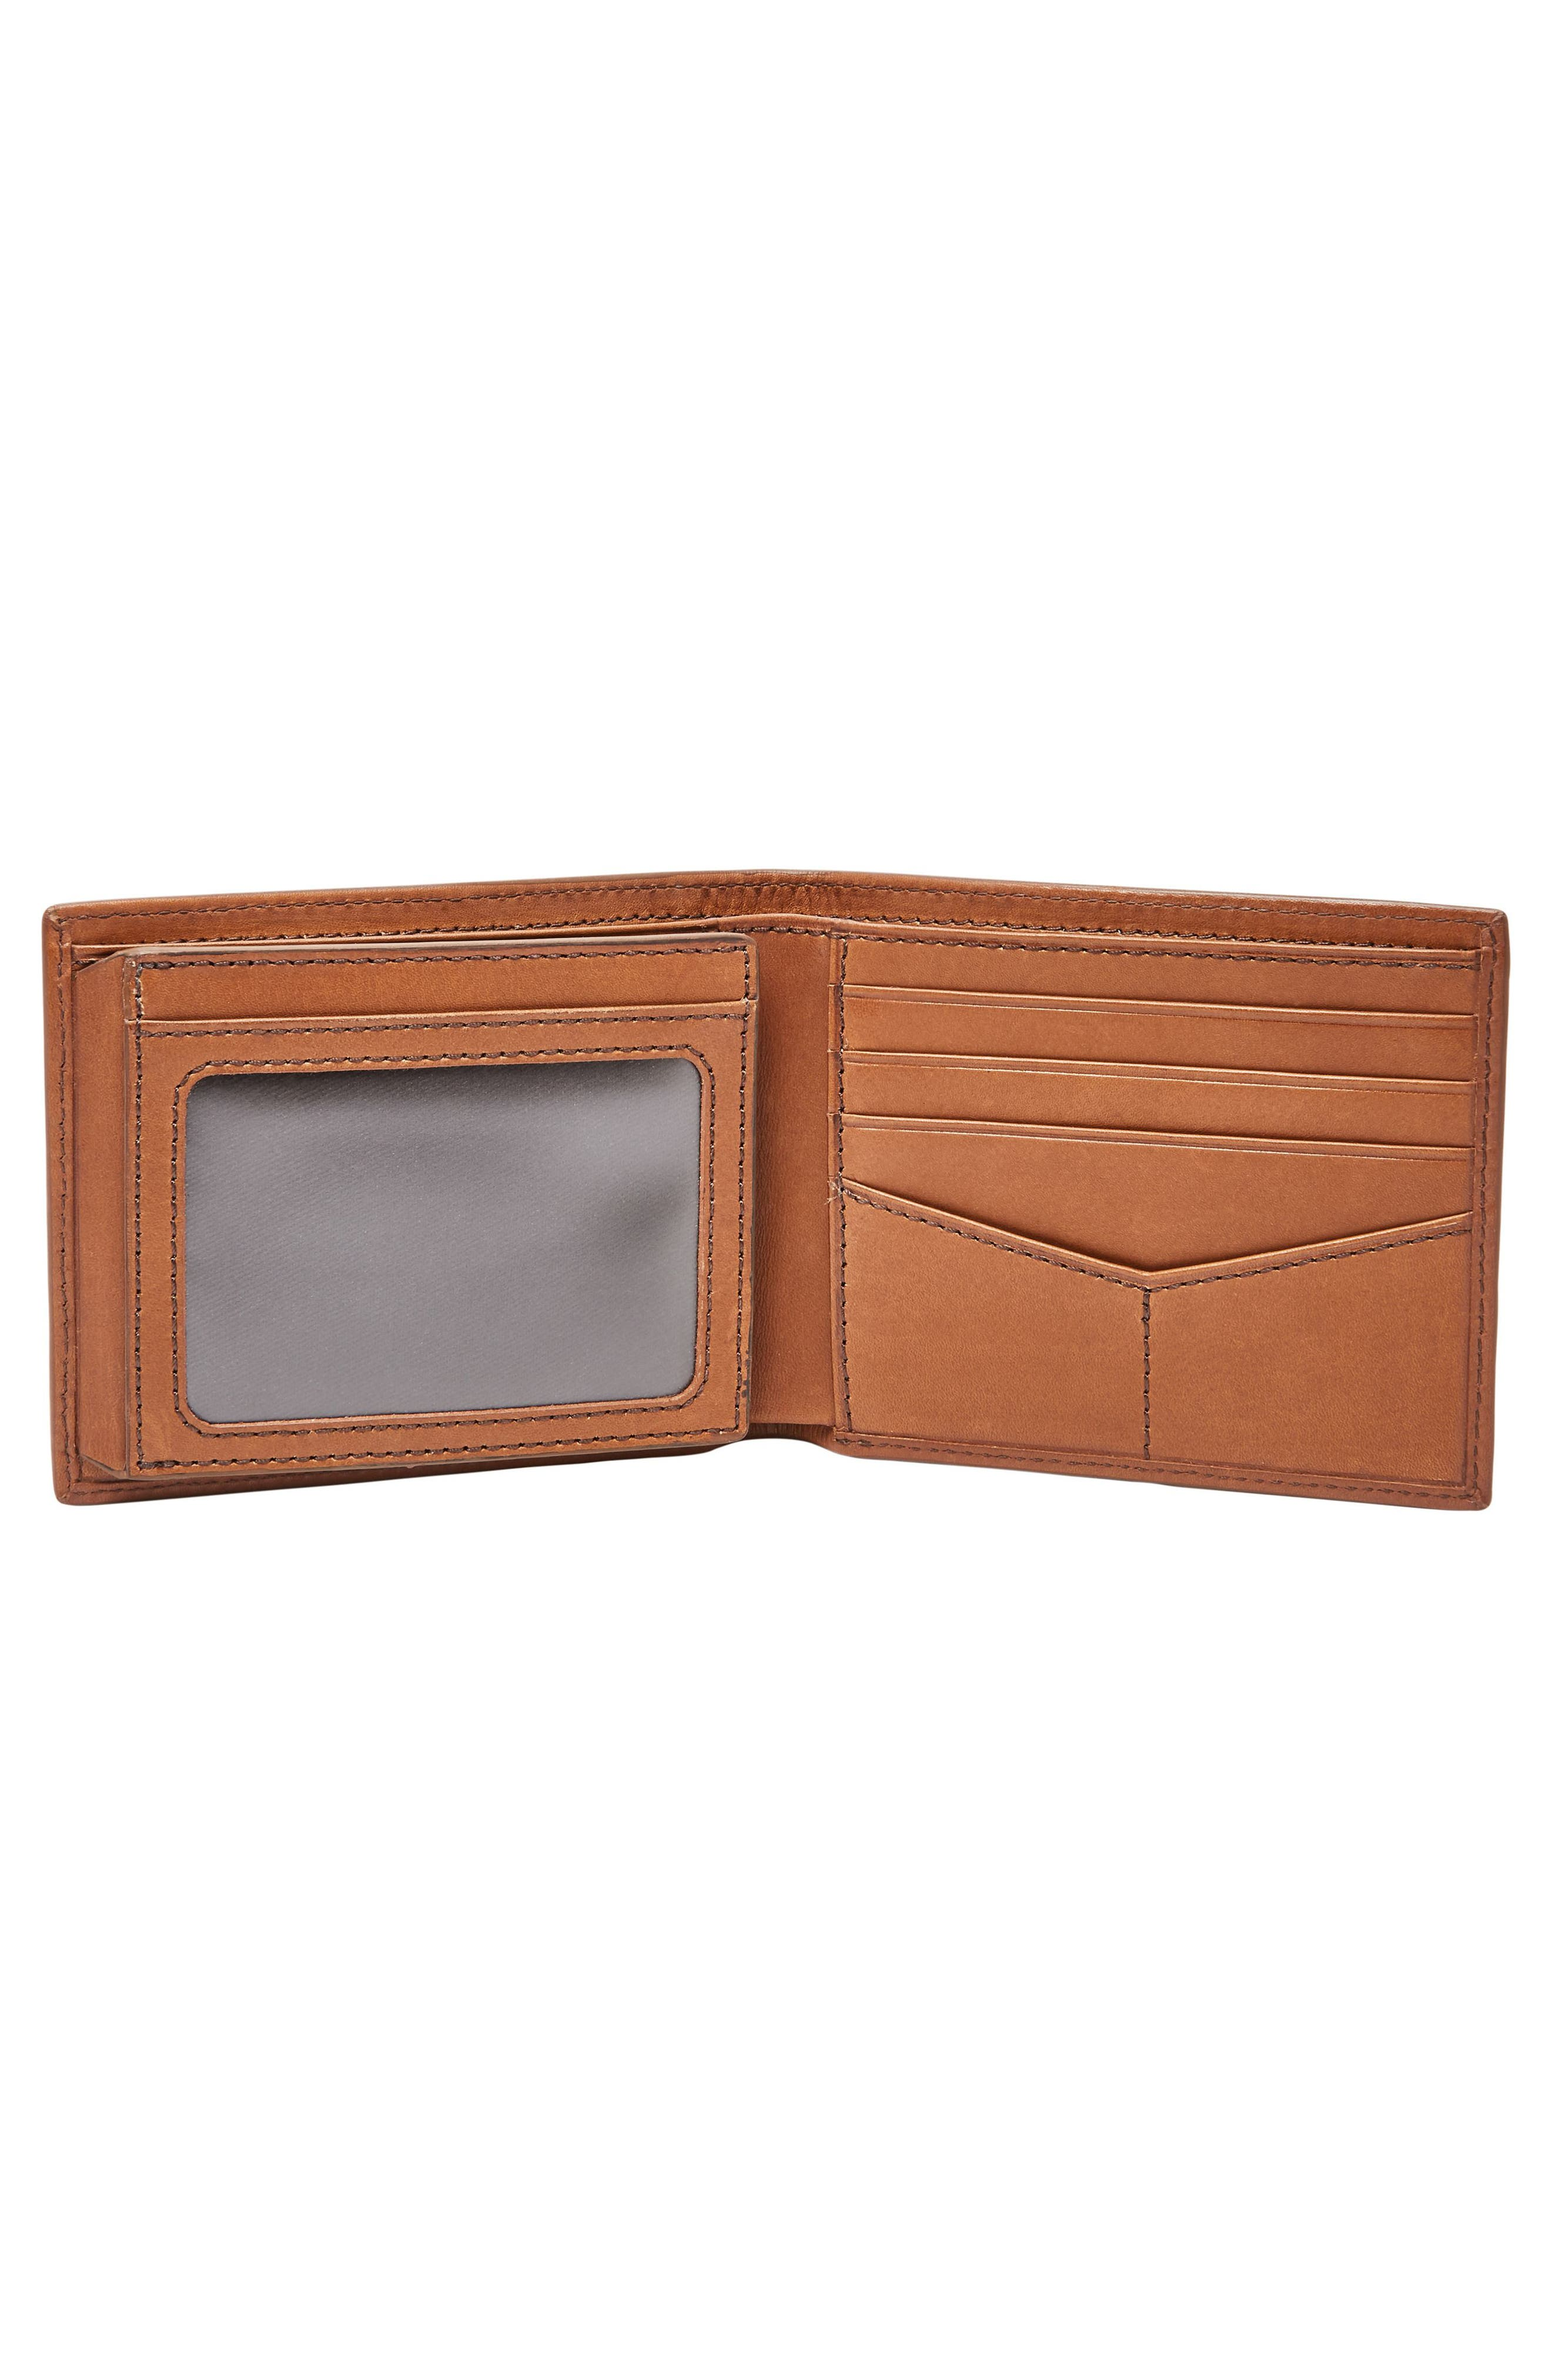 Paul Leather Wallet,                             Alternate thumbnail 3, color,                             Cognac